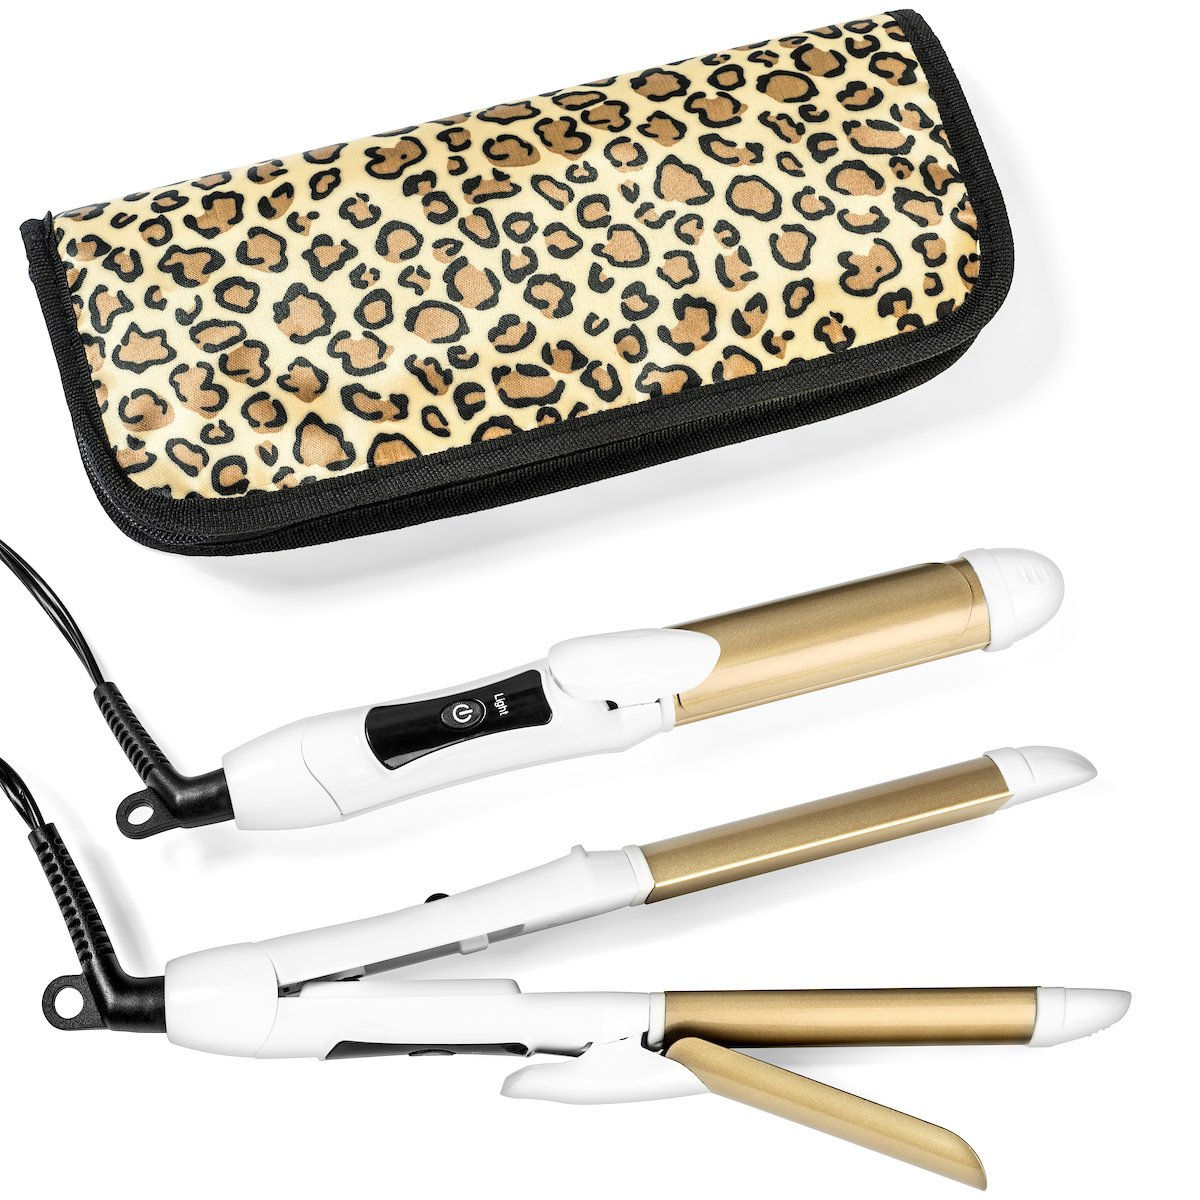 Travel Flat Iron 2-in-1 Mini Hair Straightener Curling Iron